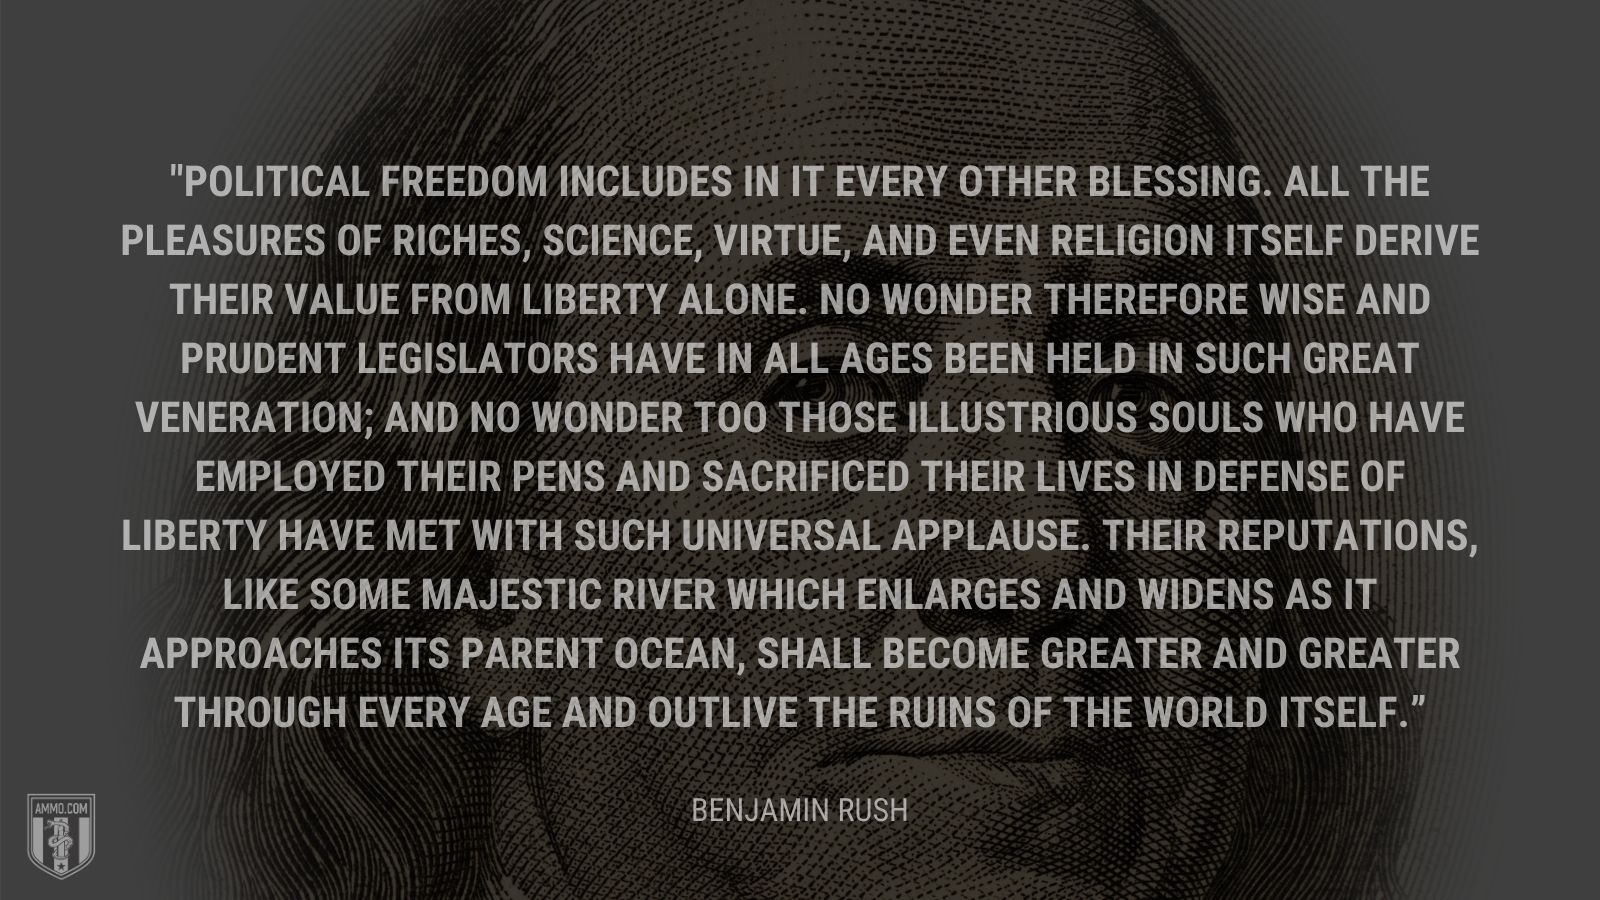 """Political freedom includes in it every other blessing. All the pleasures of riches, science, virtue, and even religion itself derive their value from liberty alone. No wonder therefore wise and prudent legislators have in all ages been held in such great veneration; and no wonder too those illustrious souls who have employed their pens and sacrificed their lives in defense of liberty have met with such universal applause. Their reputations, like some majestic river which enlarges and widens as it approaches its parent ocean, shall become greater and greater through every age and outlive the ruins of the world itself."" - Benjamin Rush"